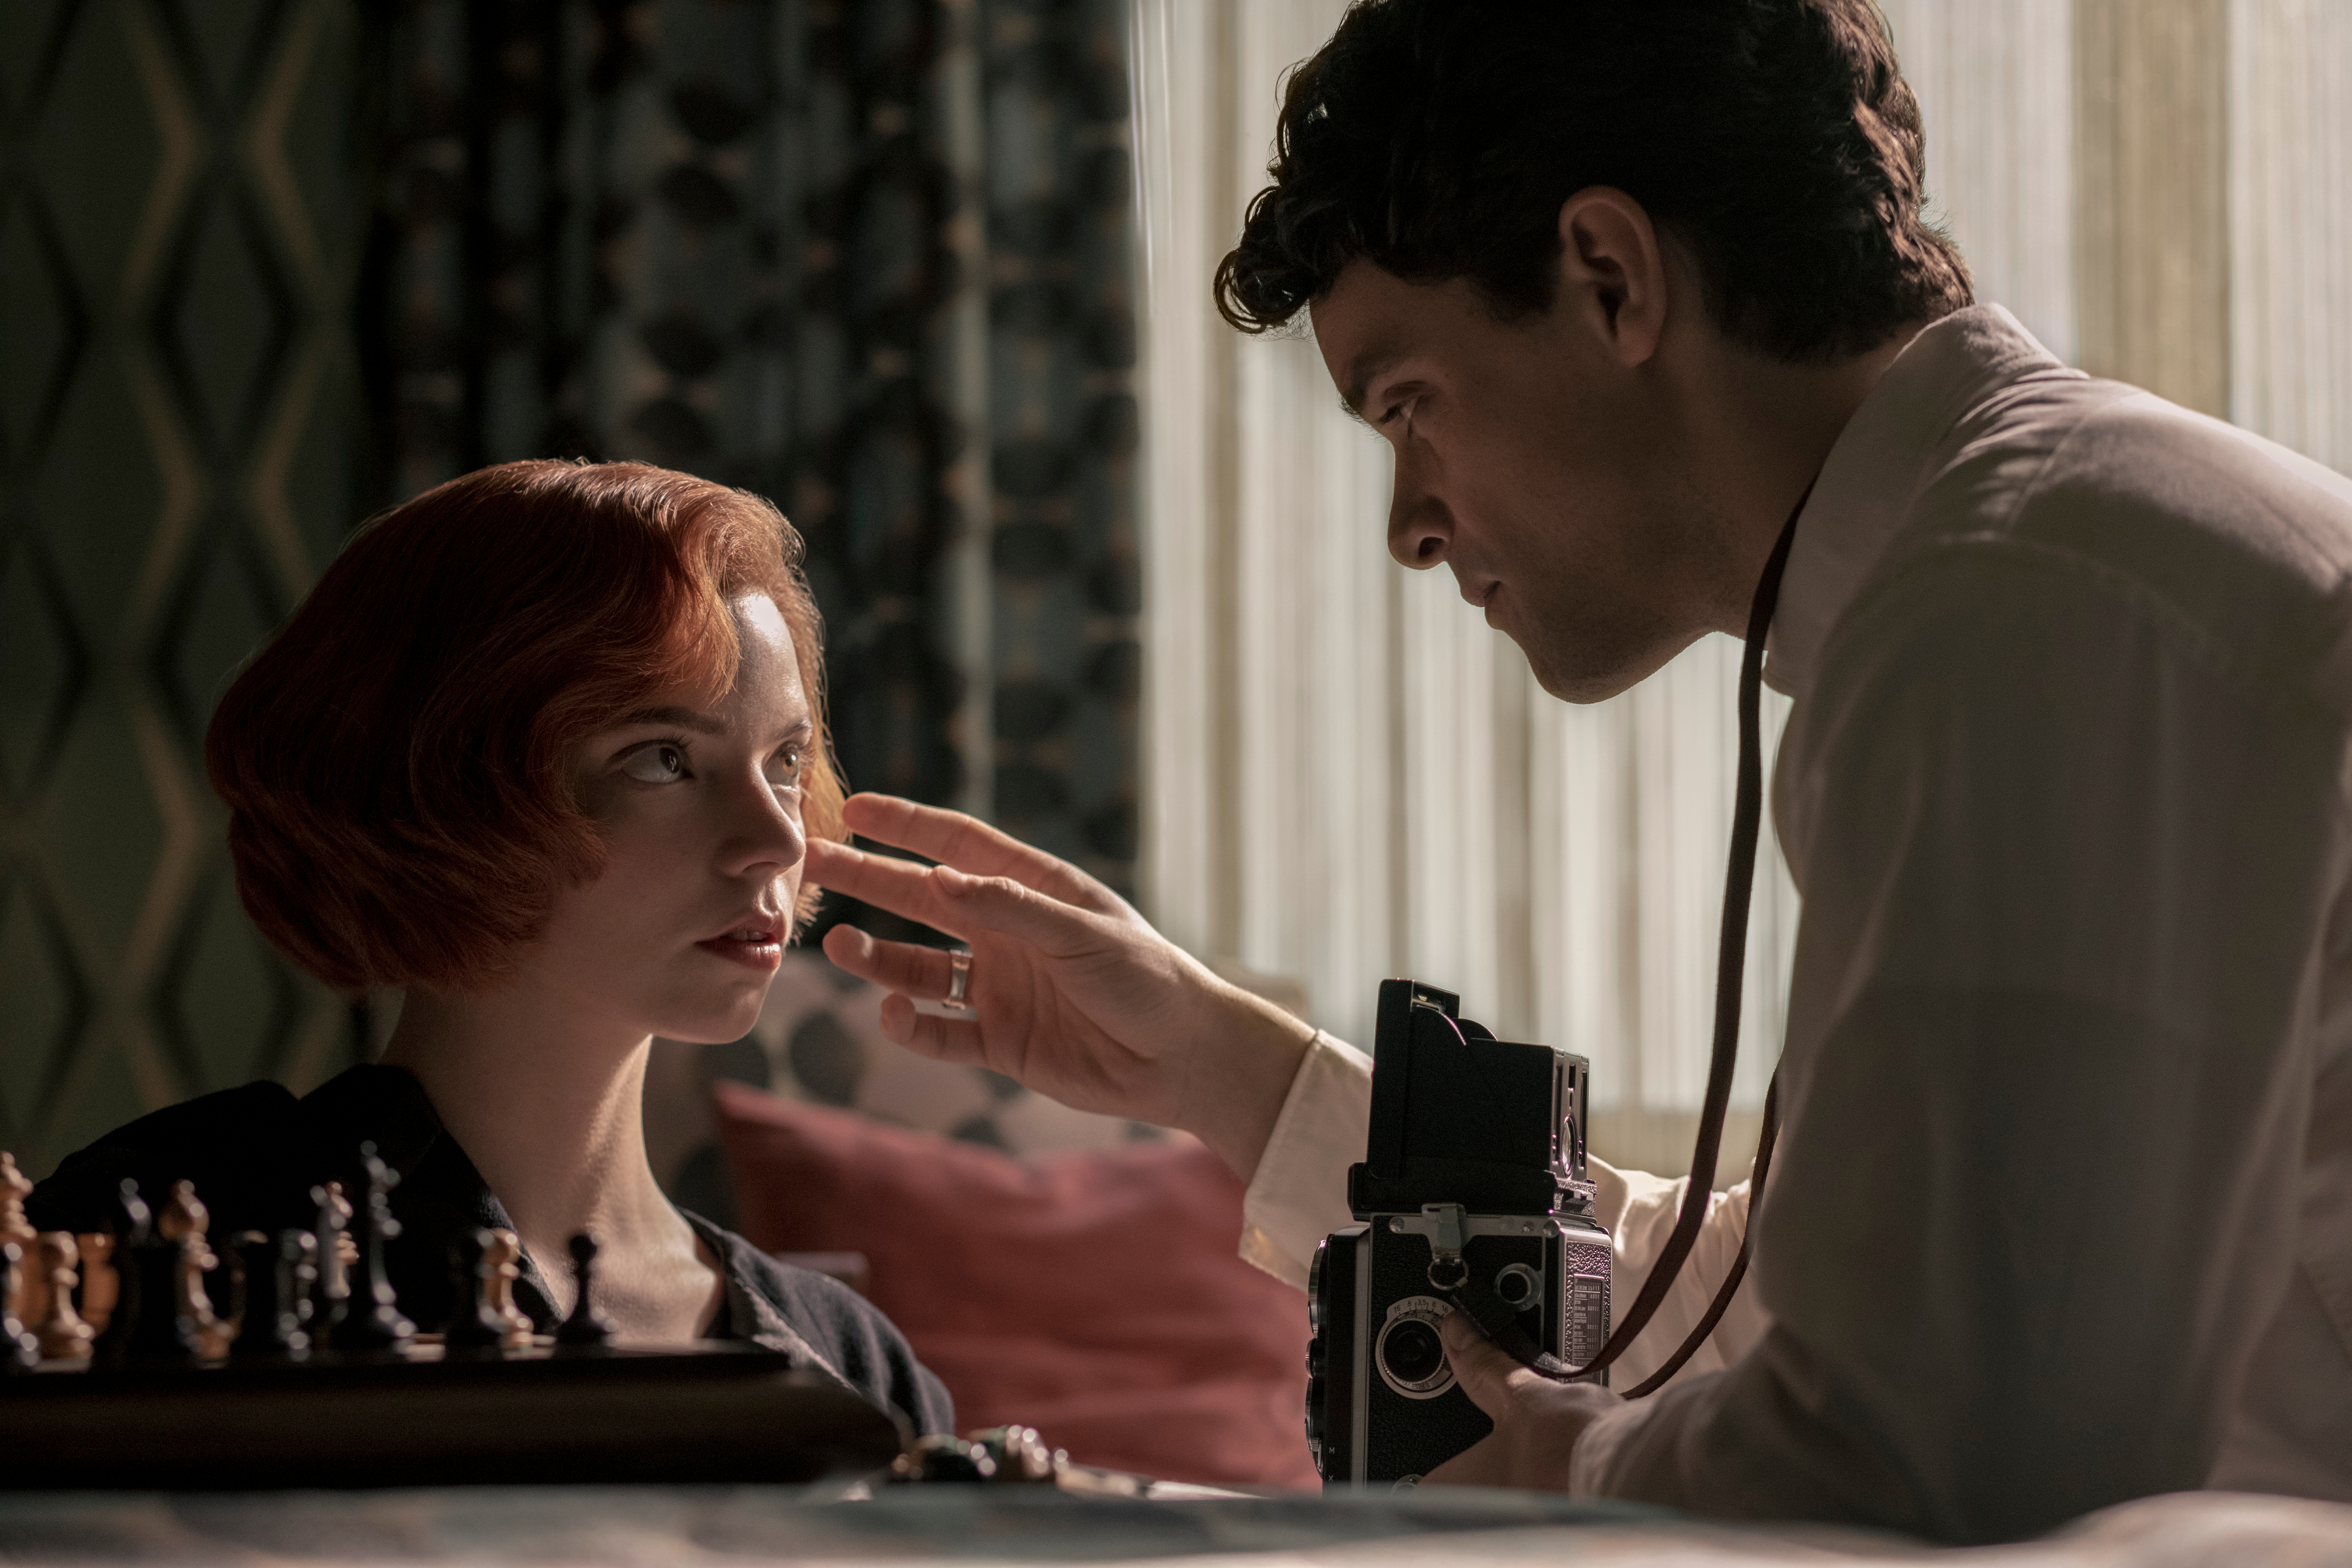 A red-headed woman (Beth) kneels before a chess board perched on the side of a bed. A brown-haired man holding a camera adjusts her hair as he prepares to photograph her.